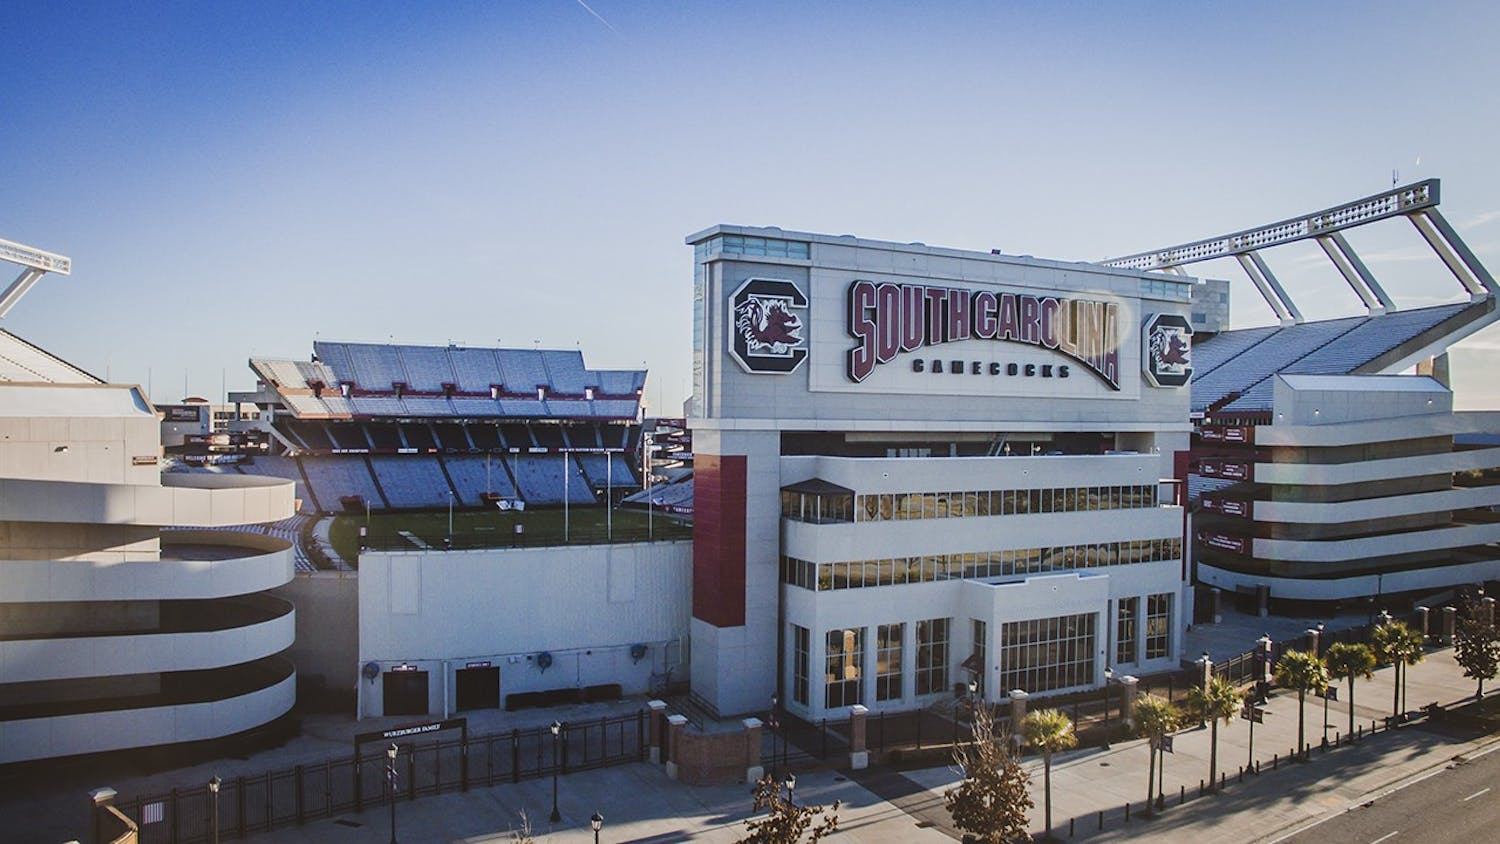 Williams-Brice Stadium sits only minutes from the University of South Carolina campus. Shane Beamer has been named the new head football coach of the Gamecocks.